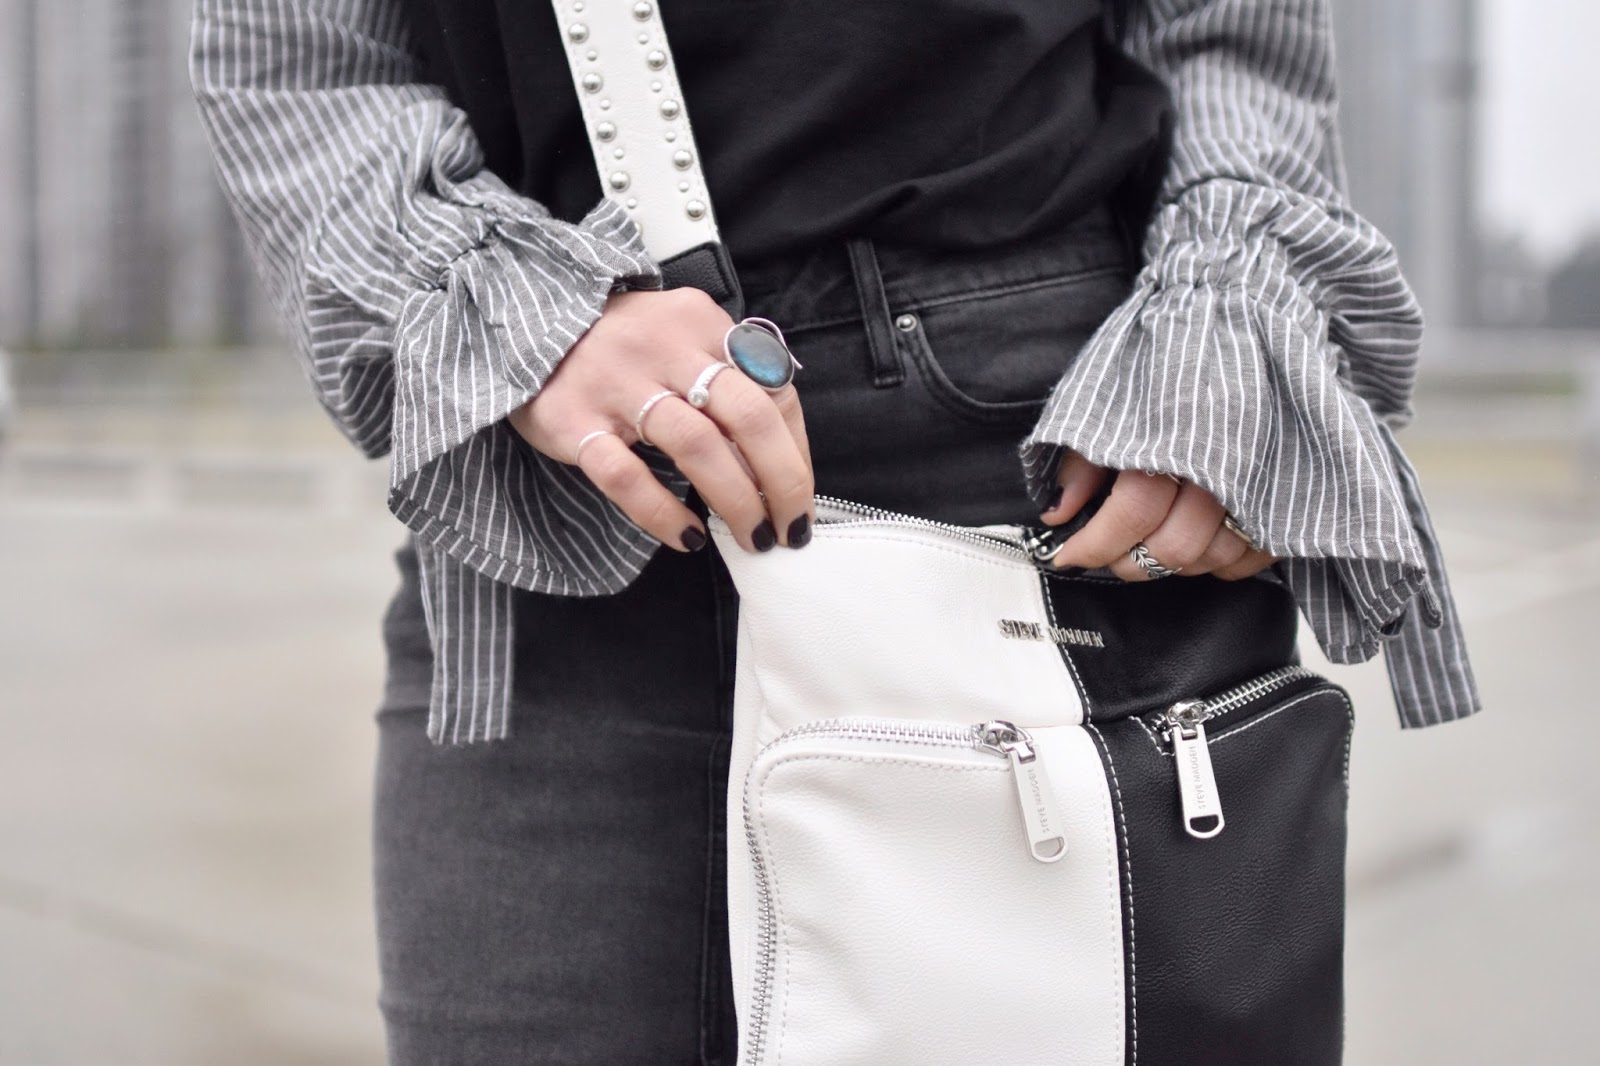 Monika Faulkner outfit inspiration - sweatshirt with mixed media sleeves, black denim skirt, black and white cross-body bag